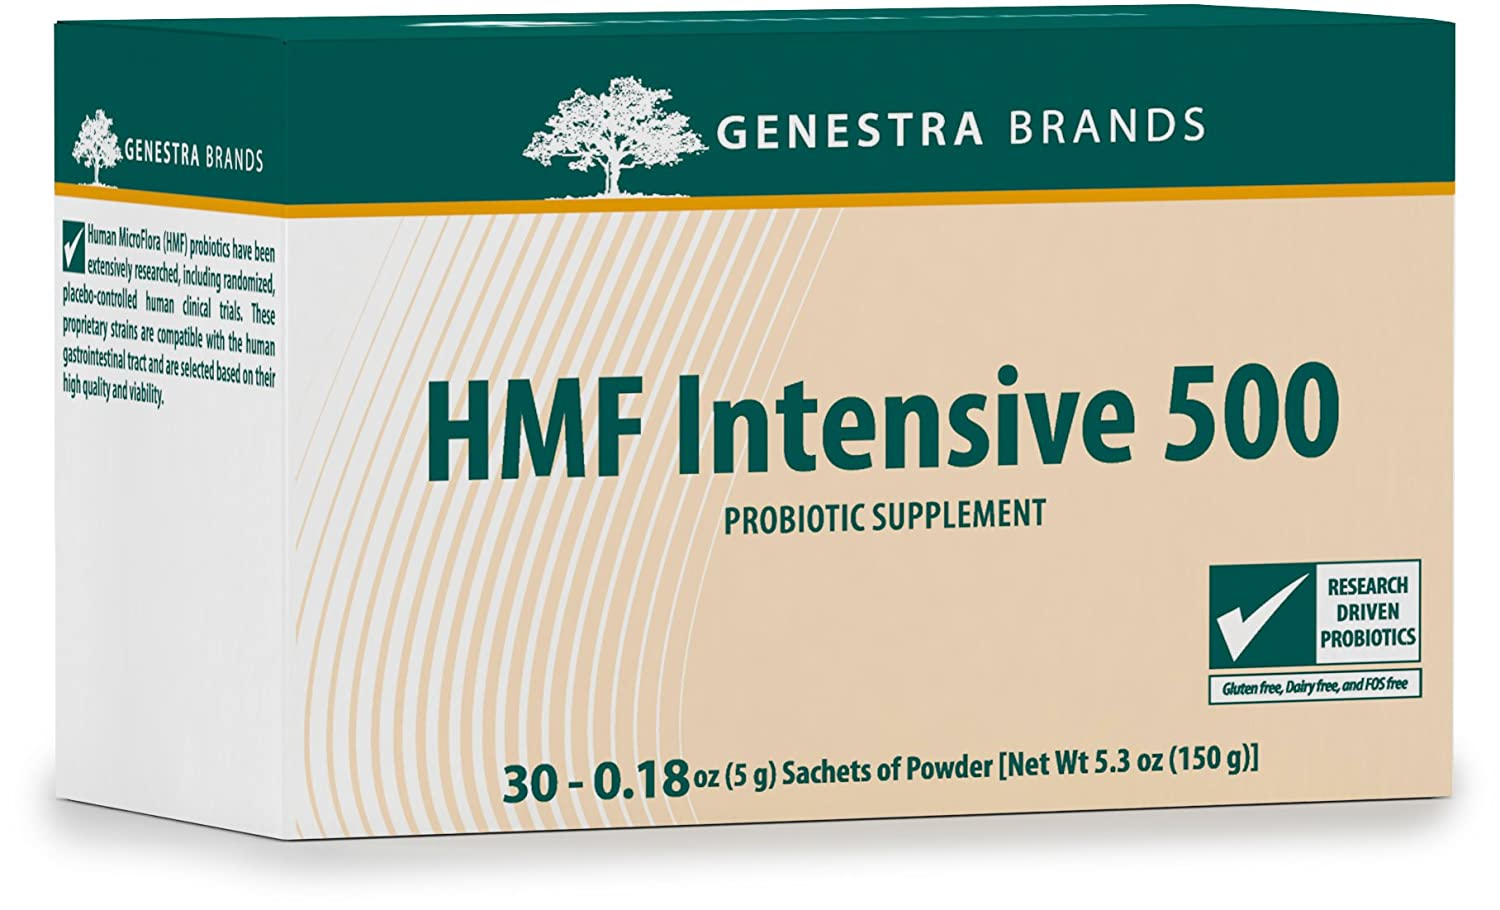 Amazon.com: Genestra Brands - HMF Intensive 500 - Highly Concentrated Probiotic Supplement to Support Gastrointestinal Health - 5 Gram Sachets of Powder ...